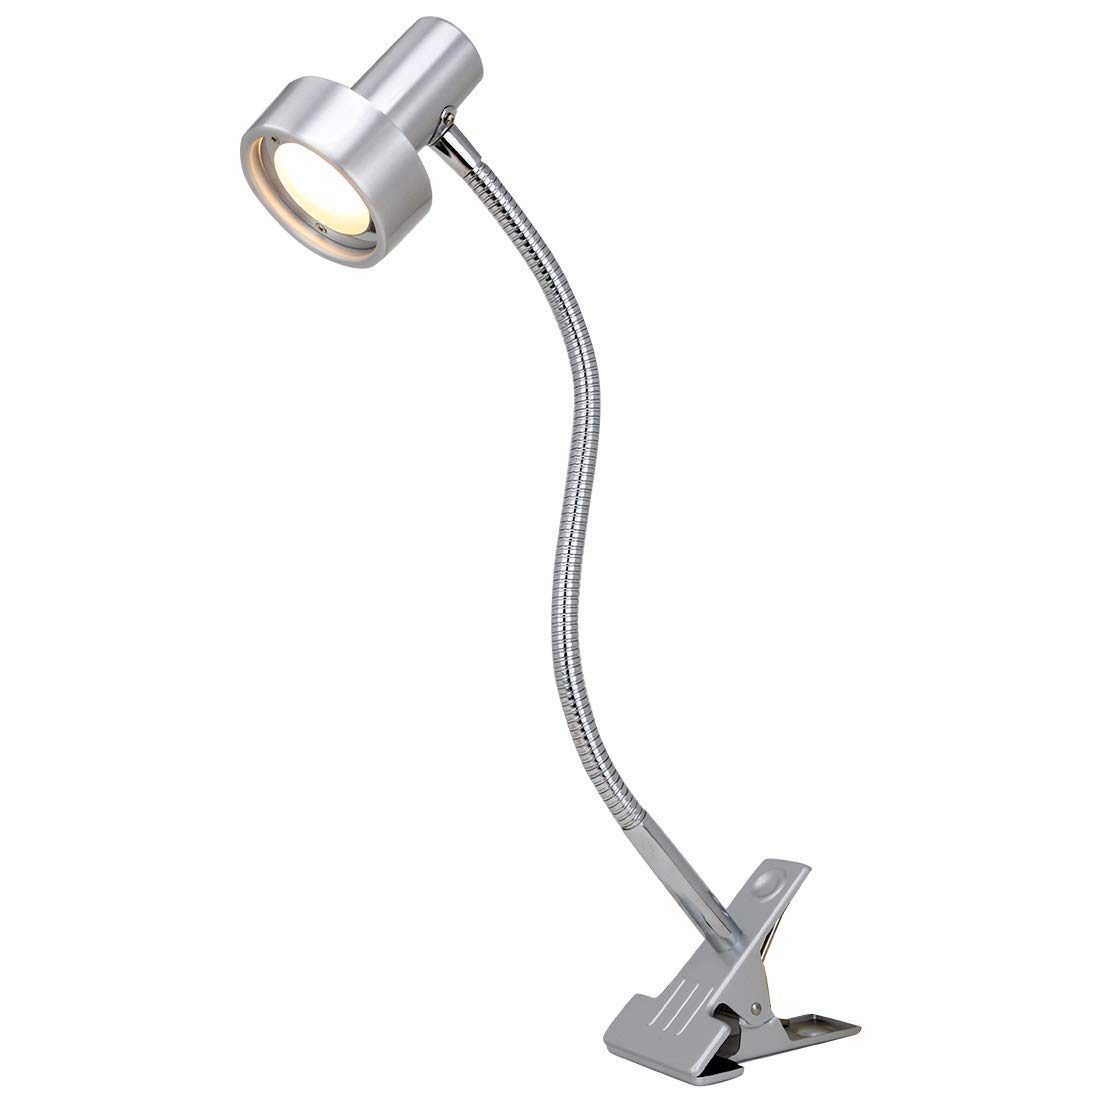 O'Bright LED Clip on Light for Bed Headboard / Desk, Dimmable LED Desk Lamp with Metal Clamp, 5W LED, Flexible Gooseneck, Adjustable Brightness for Eye-Care Reading, Vintage Design (Metal Black) O'Bright